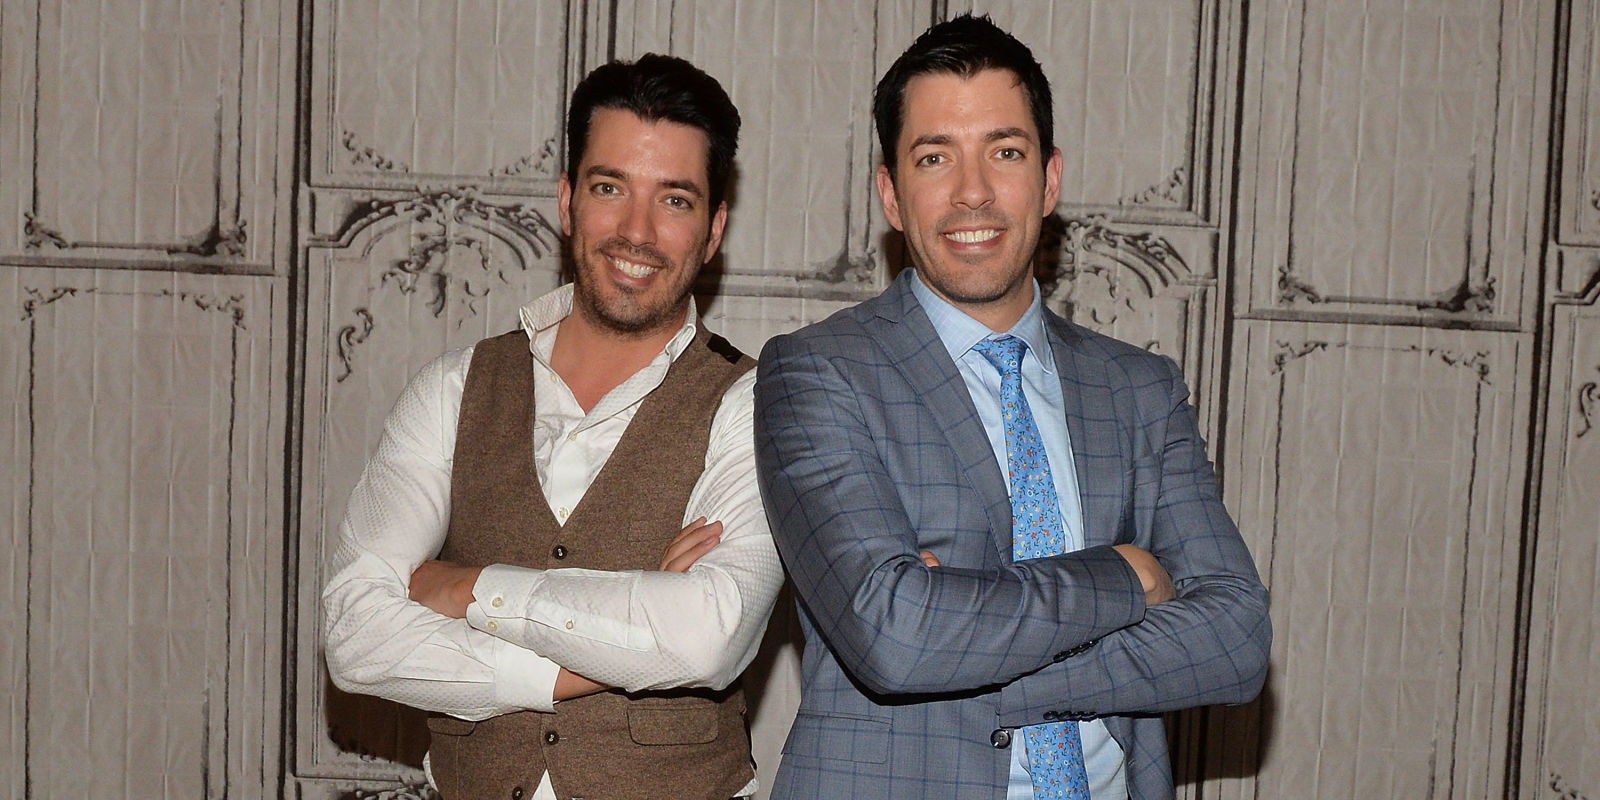 Hgtv 39 S Property Brothers 39 Recreate Scenes For Better